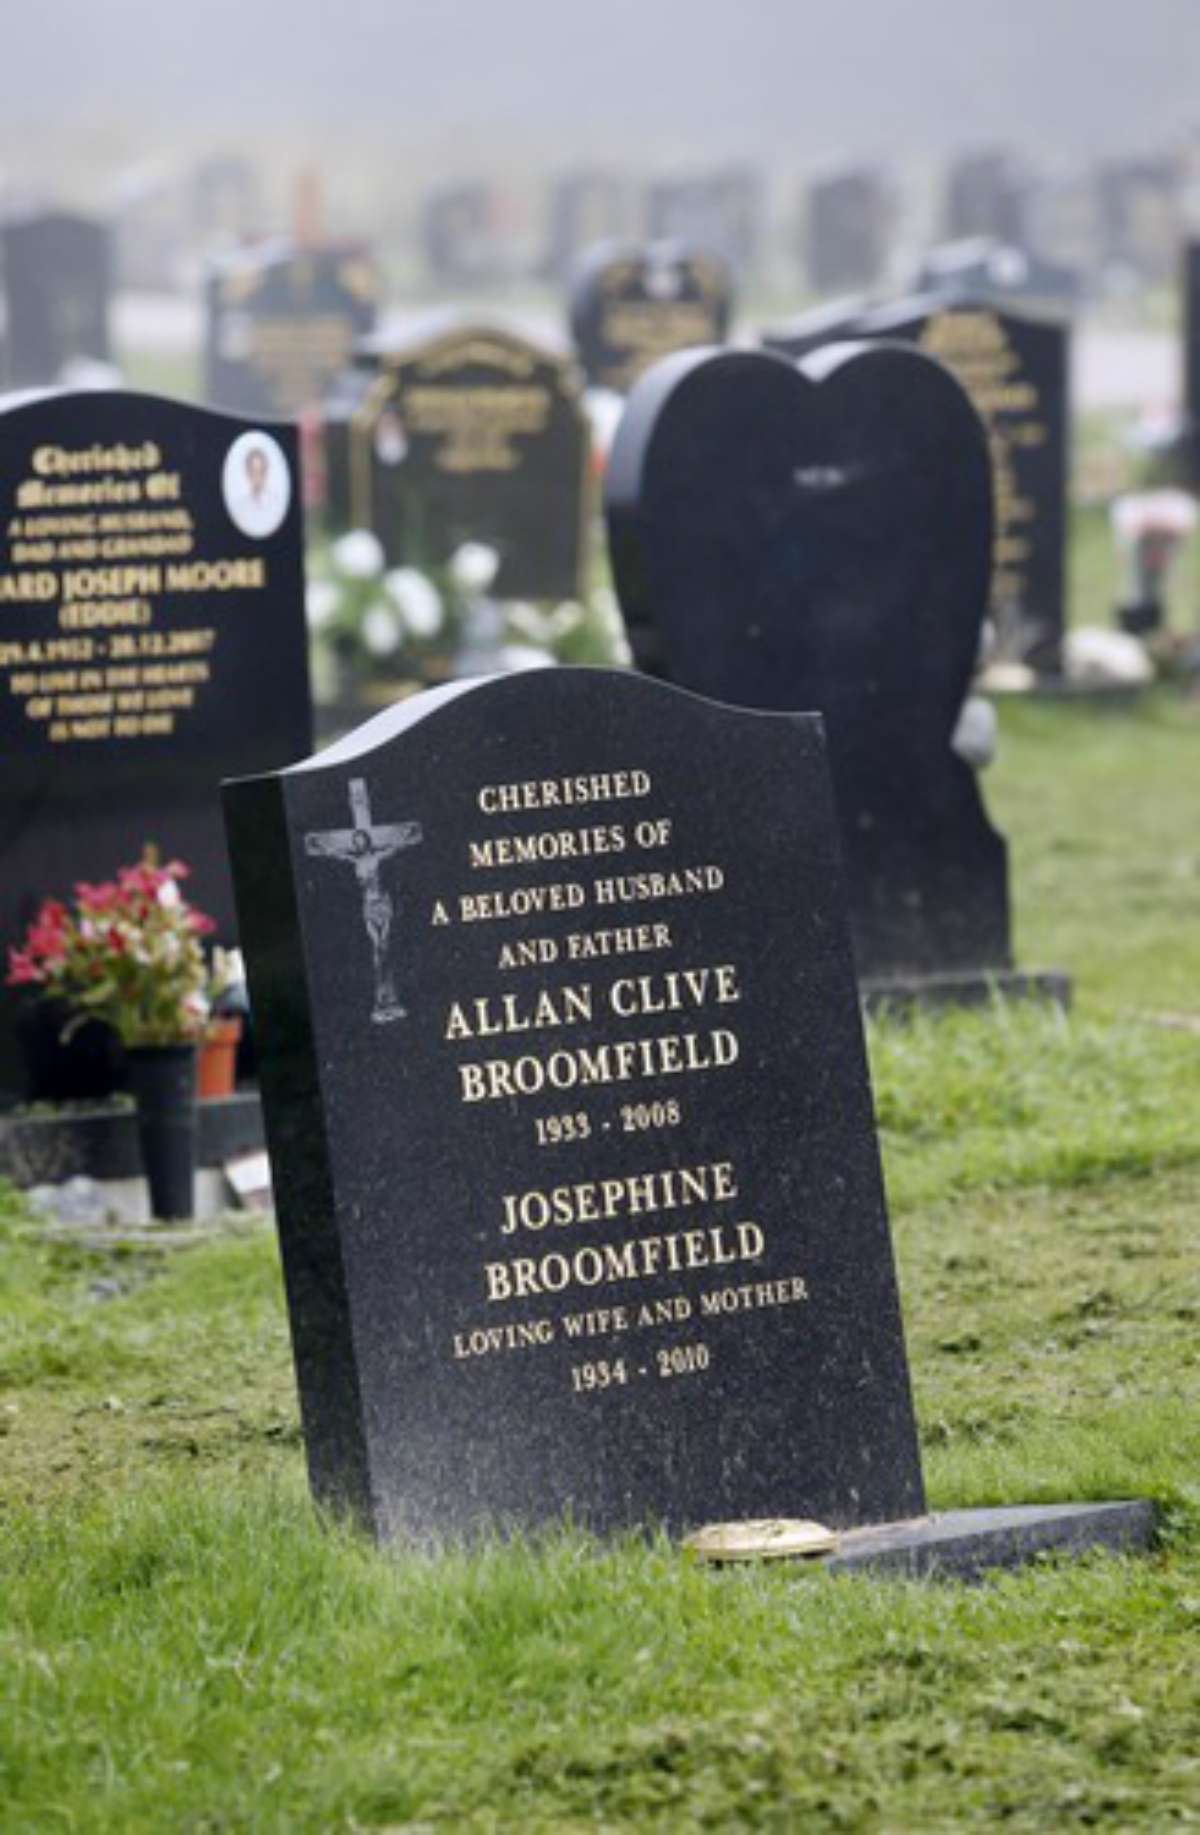 Graves at Lavender Hill cemetery have mysteriously sunk